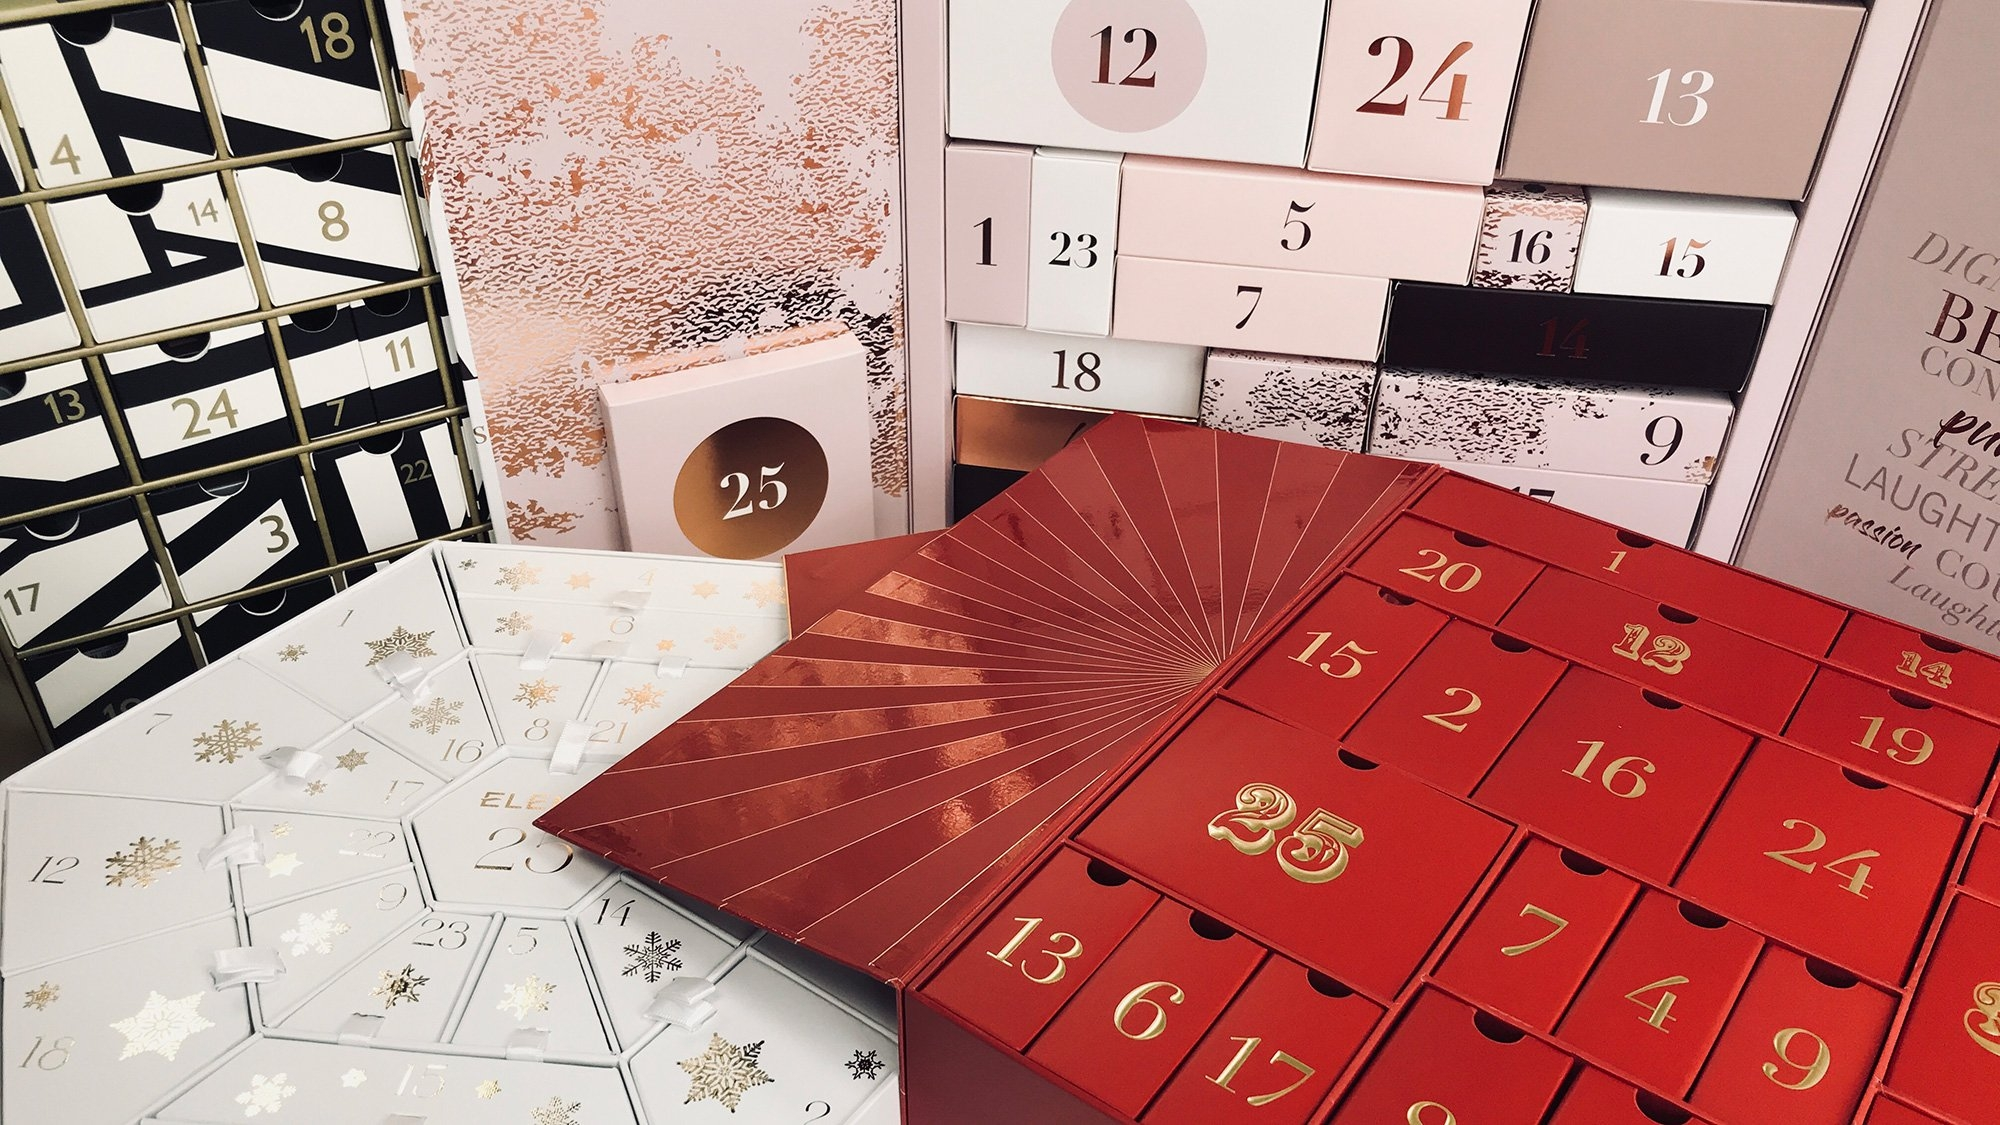 Beauty Advent Calendars On Sale: Bag A Bargain Before 2019 M&s Calendar 2019